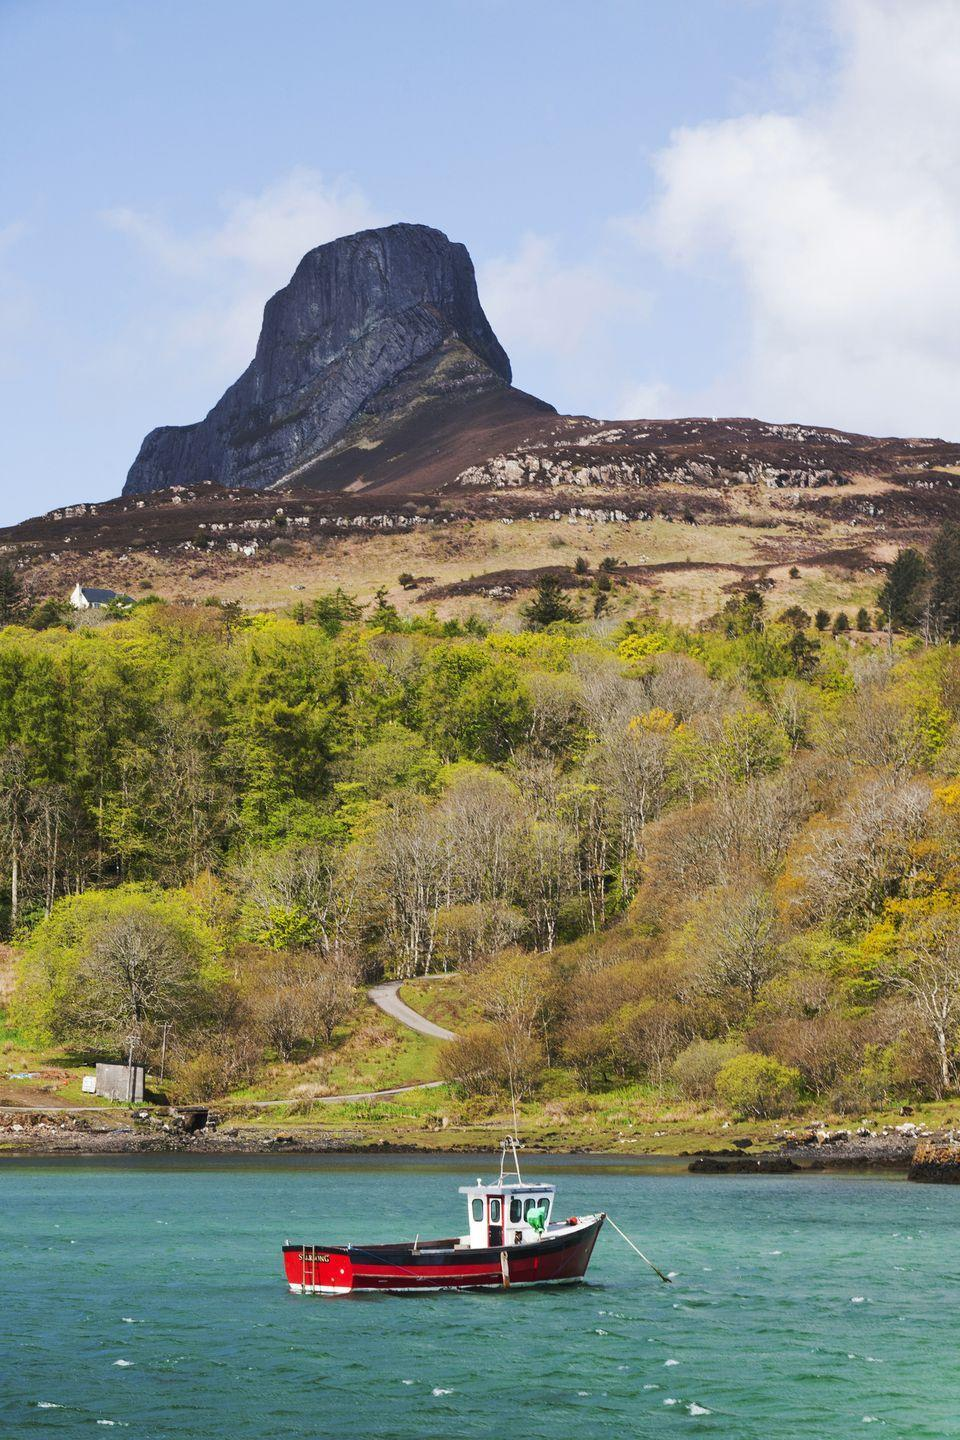 """<p>On the isolated isle of Eigg, An Sgùrr watches over a wild and windswept landscape. Formed more than 58 million years ago – when a volcanic eruption sent lava spilling into a deep river valley – this pitchstone peak is the largest of its kind in Europe. While it might appear scarily steep at a glance, the scramble to the summit isn't a strenuous one. Follow a well-marked path, past the red-roofed farmhouse at Galmisdale and an abandoned settlement at Grulin, to the top for sprawling views over lonely lochs and out to the distant pinnacles of Skye.</p><p><a class=""""link rapid-noclick-resp"""" href=""""https://www.walkhighlands.co.uk/"""" rel=""""nofollow noopener"""" target=""""_blank"""" data-ylk=""""slk:MORE INFO"""">MORE INFO</a></p>"""